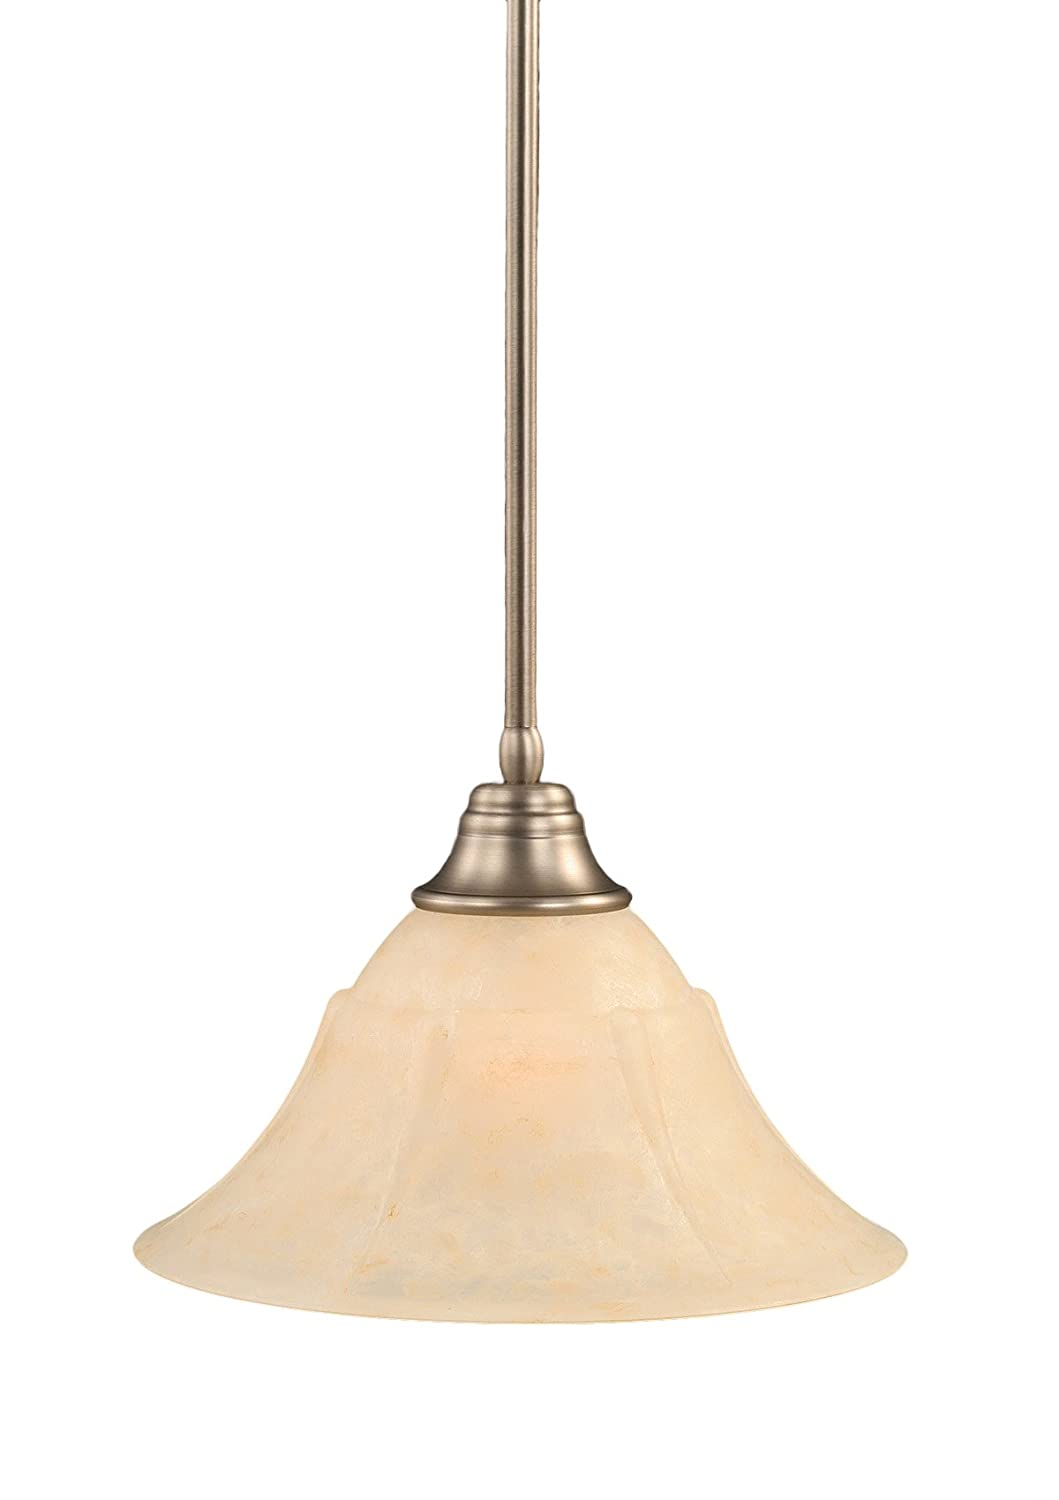 14-Inch Toltec Lighting 26-BN-53313 Stem Pendant Light Brushed Nickel Finish with Amber Marble Glass Shade